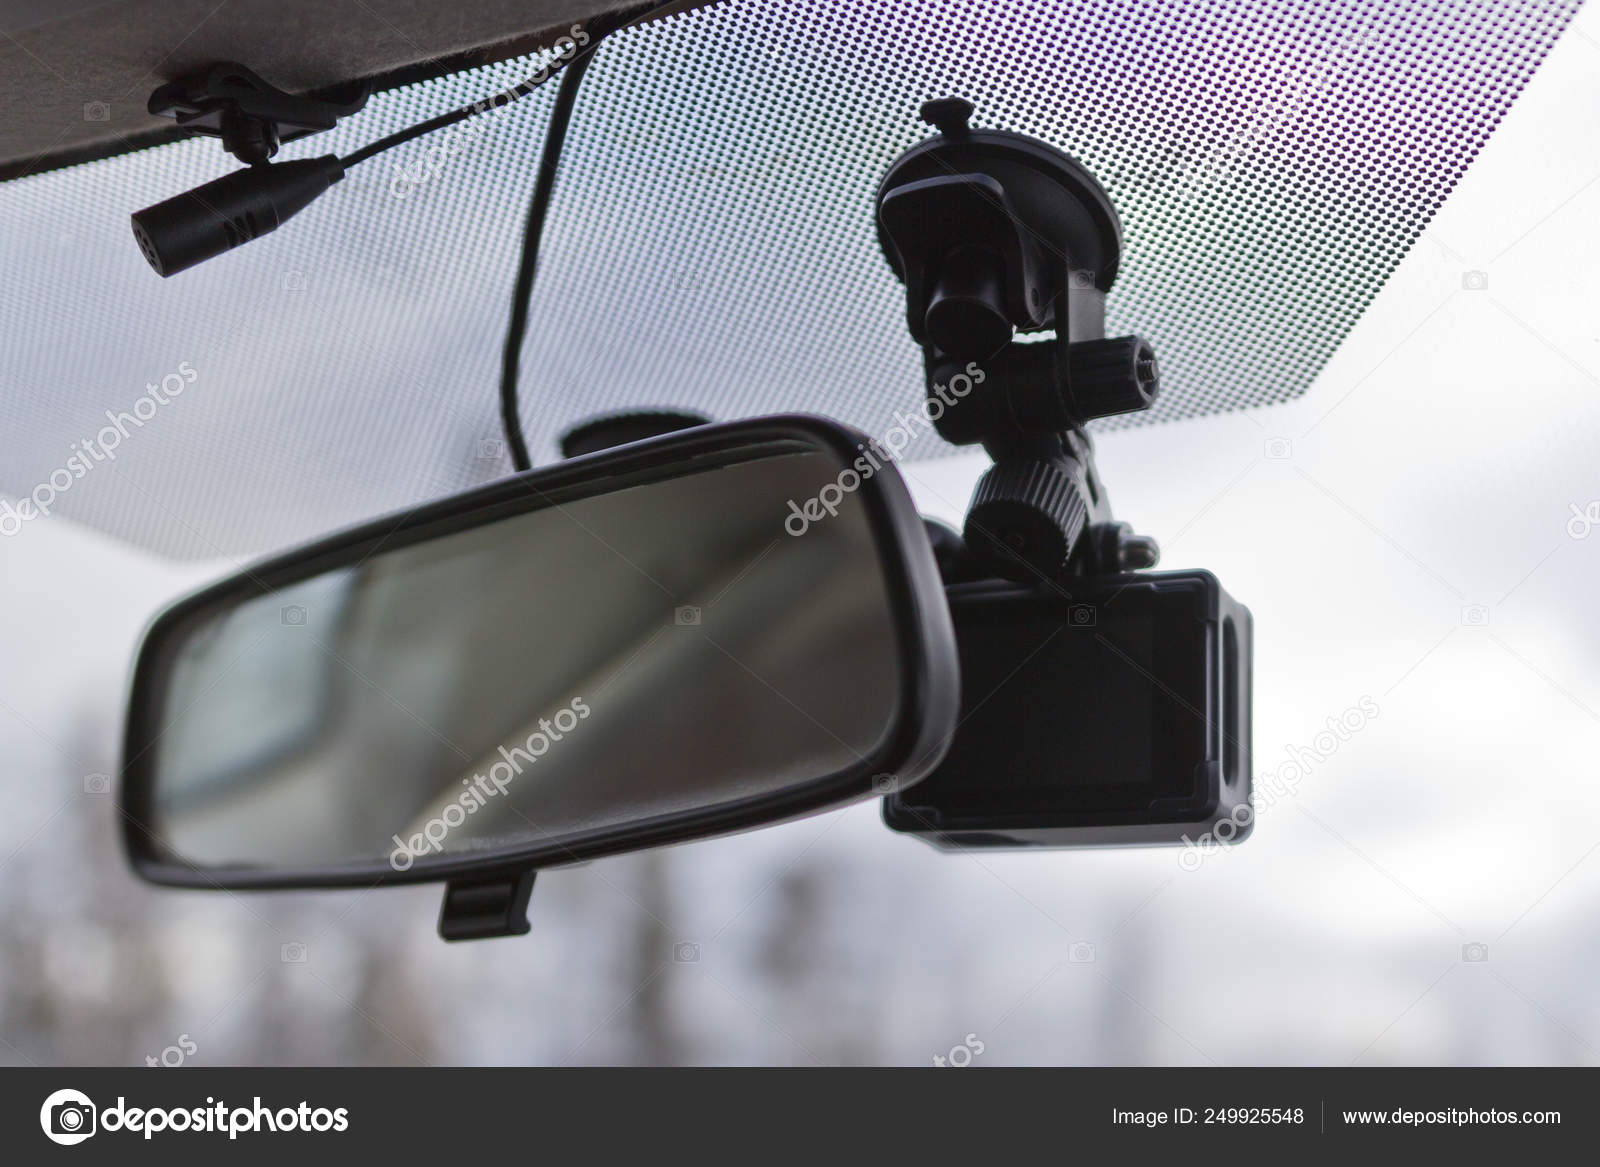 Car security camera in car for safety on an accident, technology concept